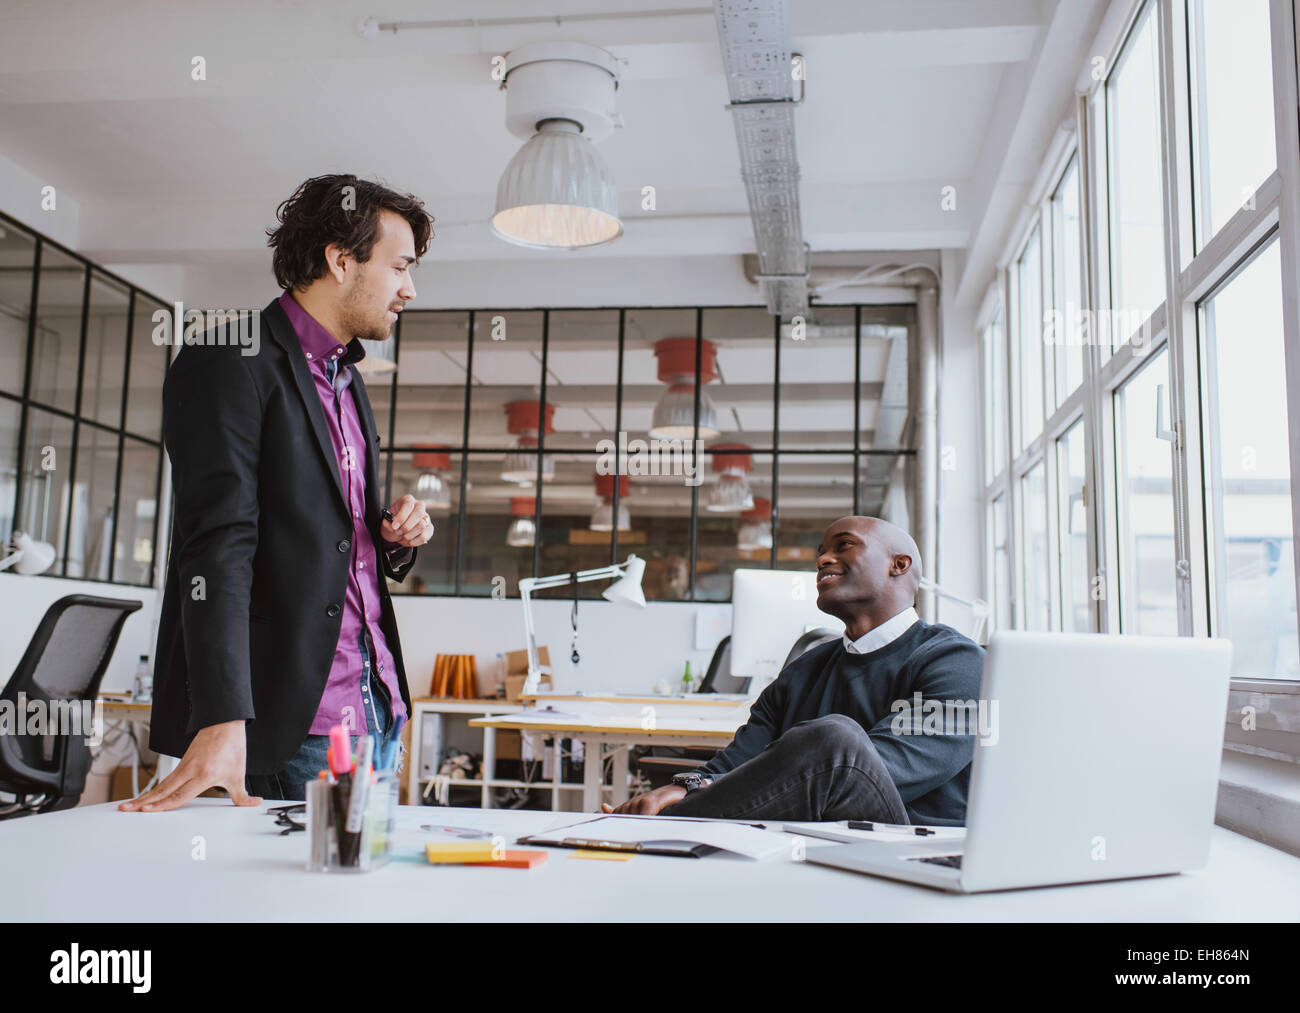 Two young office workers having a casual meeting at desk. Mixed race business people discussing work in office. - Stock Image